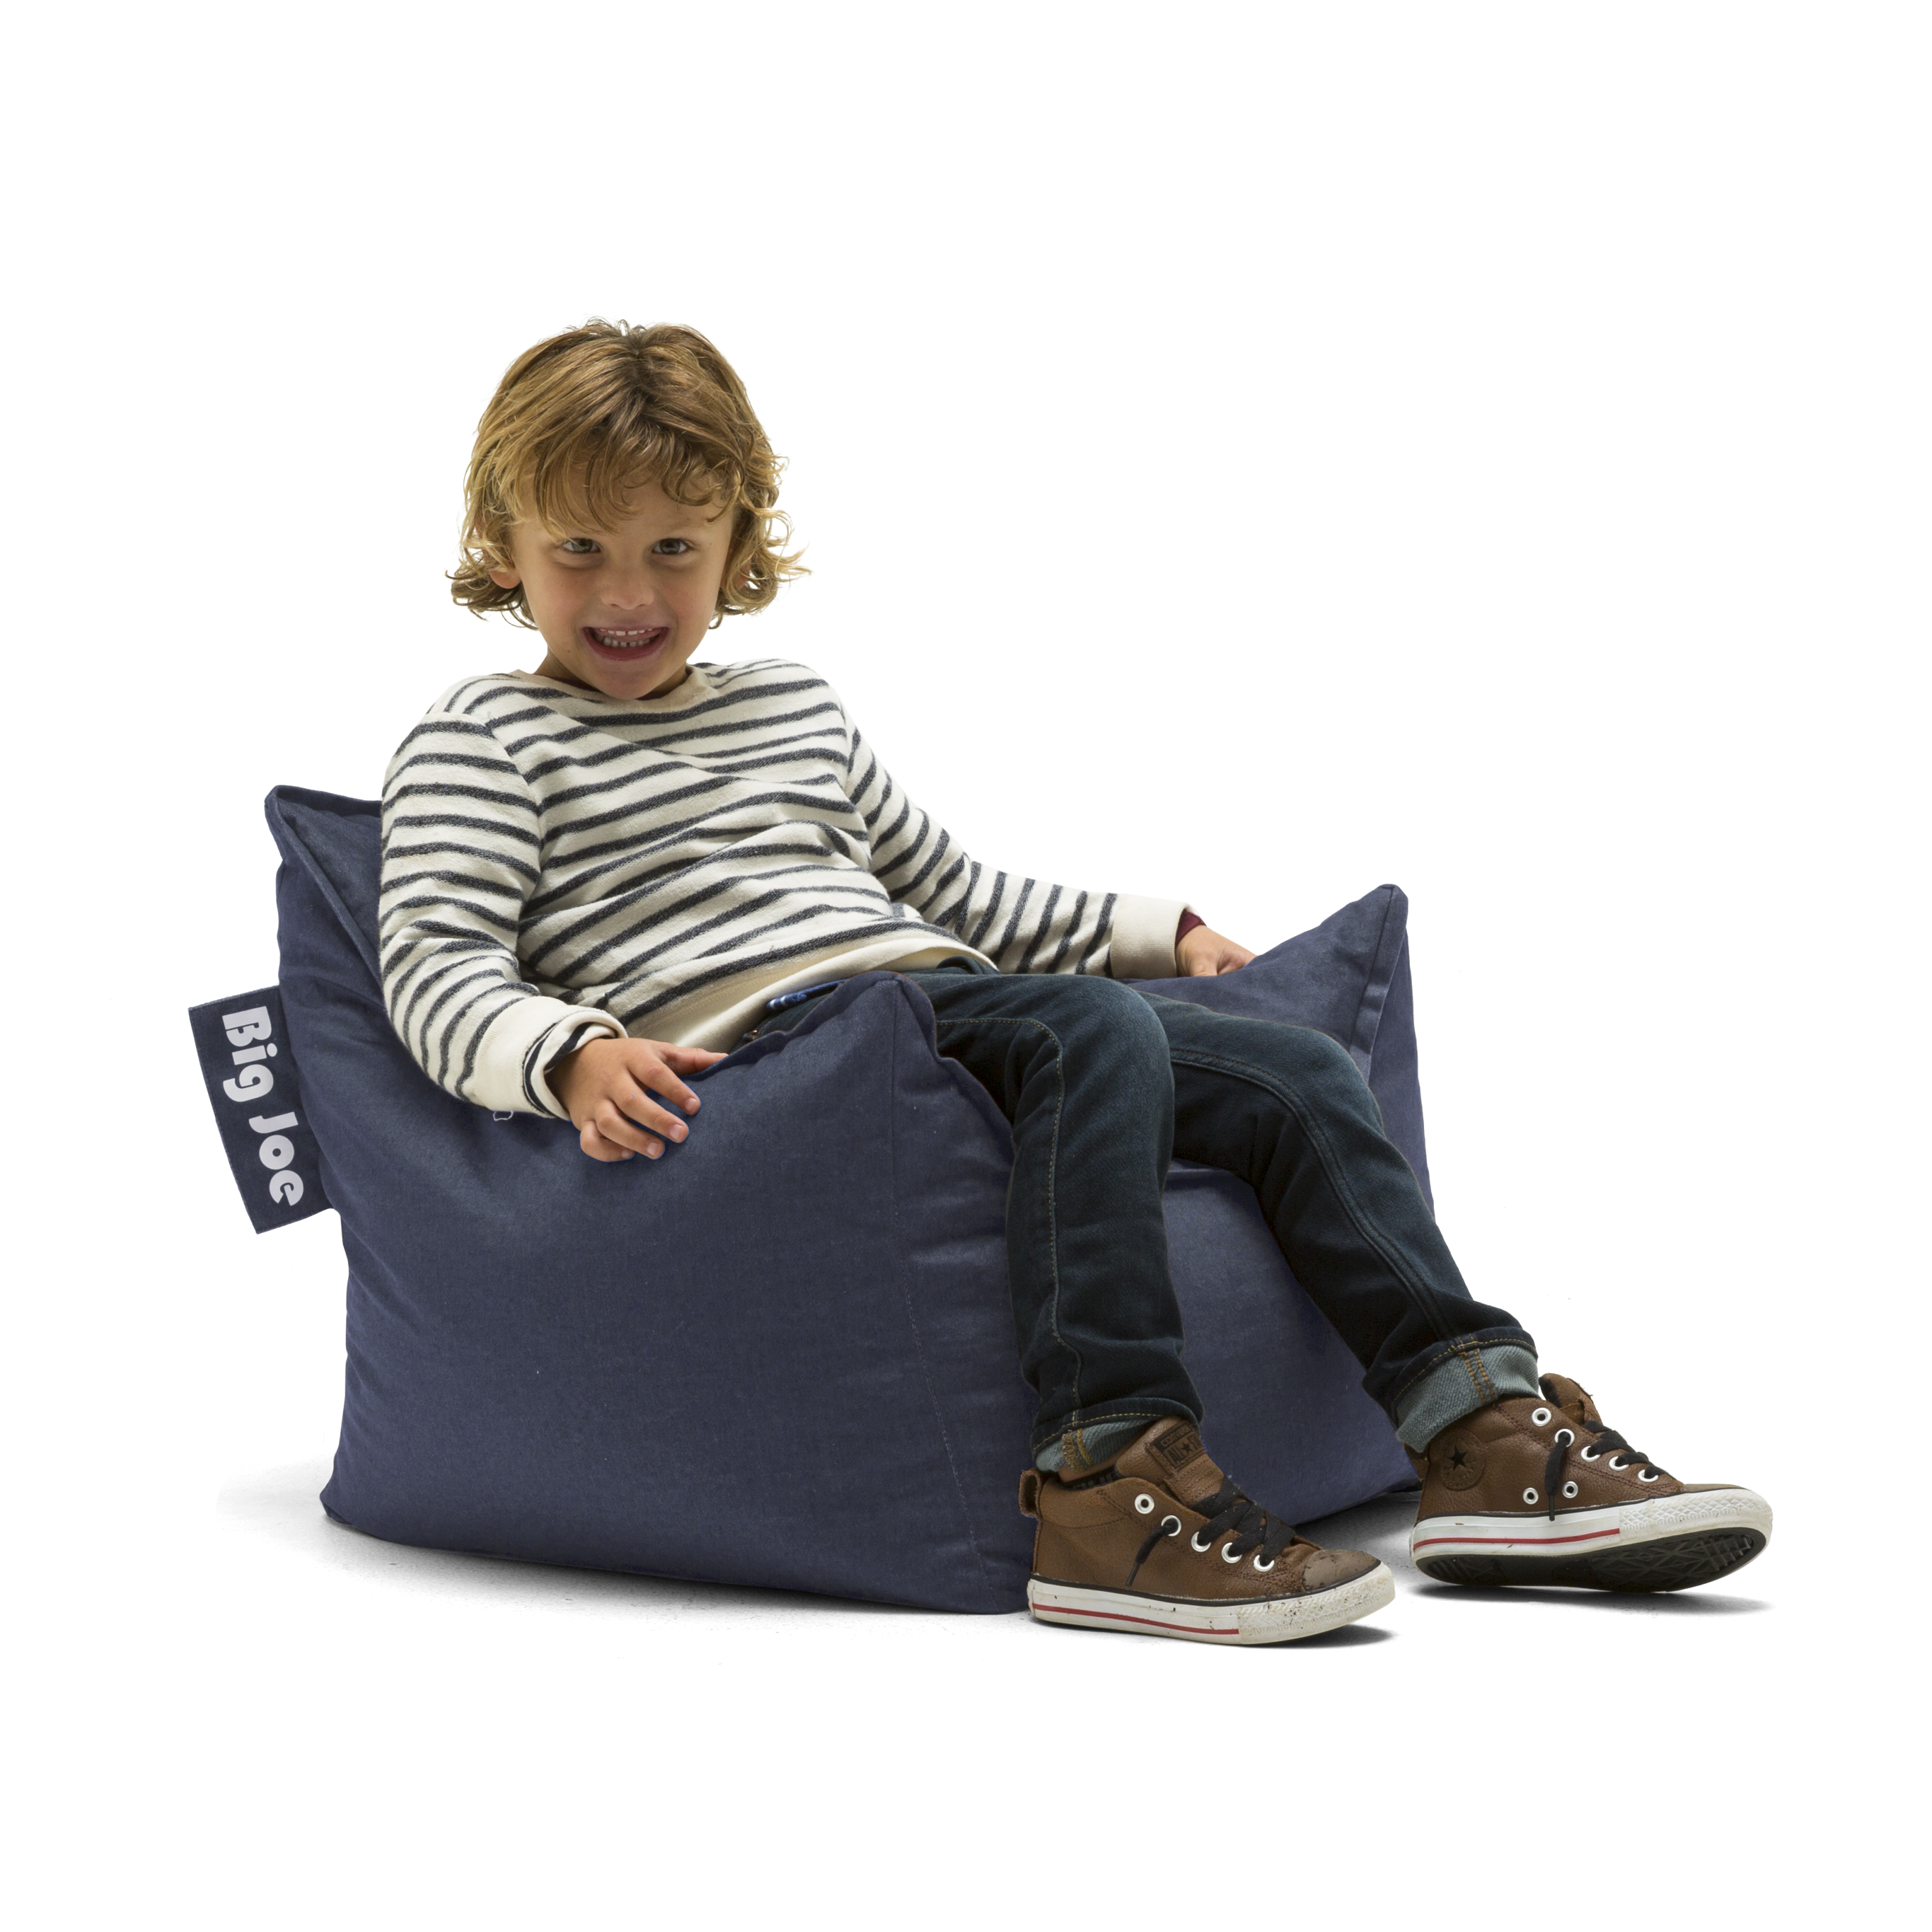 Big Joe Kid's Mitten Bean Bag Chair, Multiple Colors